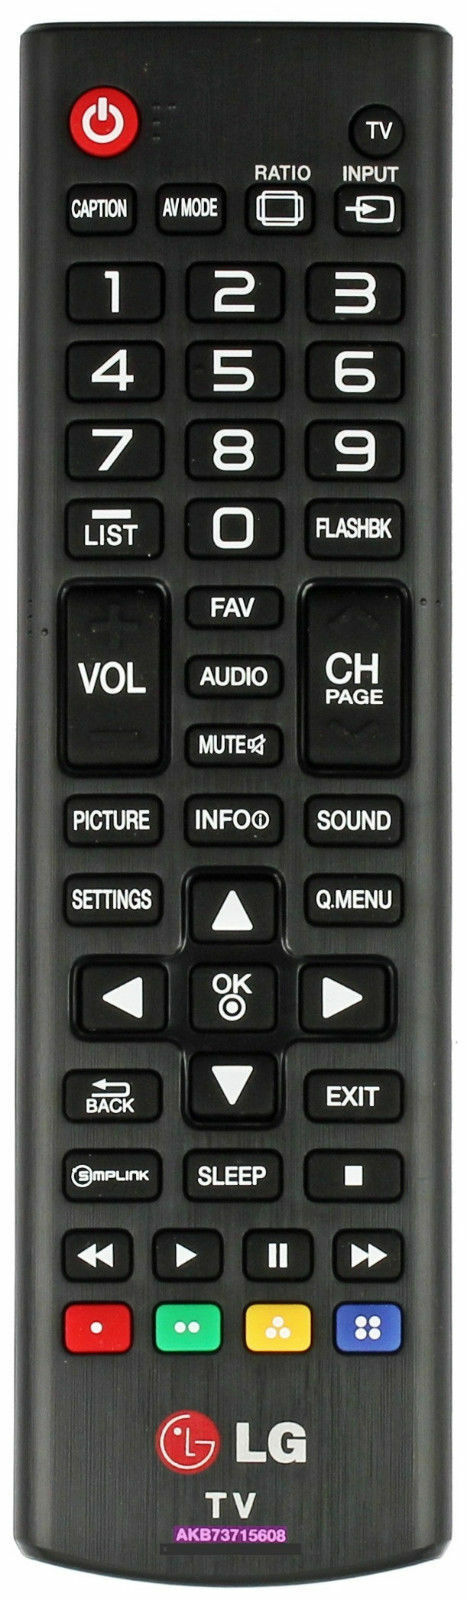 Primary image for LG AKB73715608 Remote Control TV 32LN5300 39LN5300 42LN5300 55LN5200 50LN5200